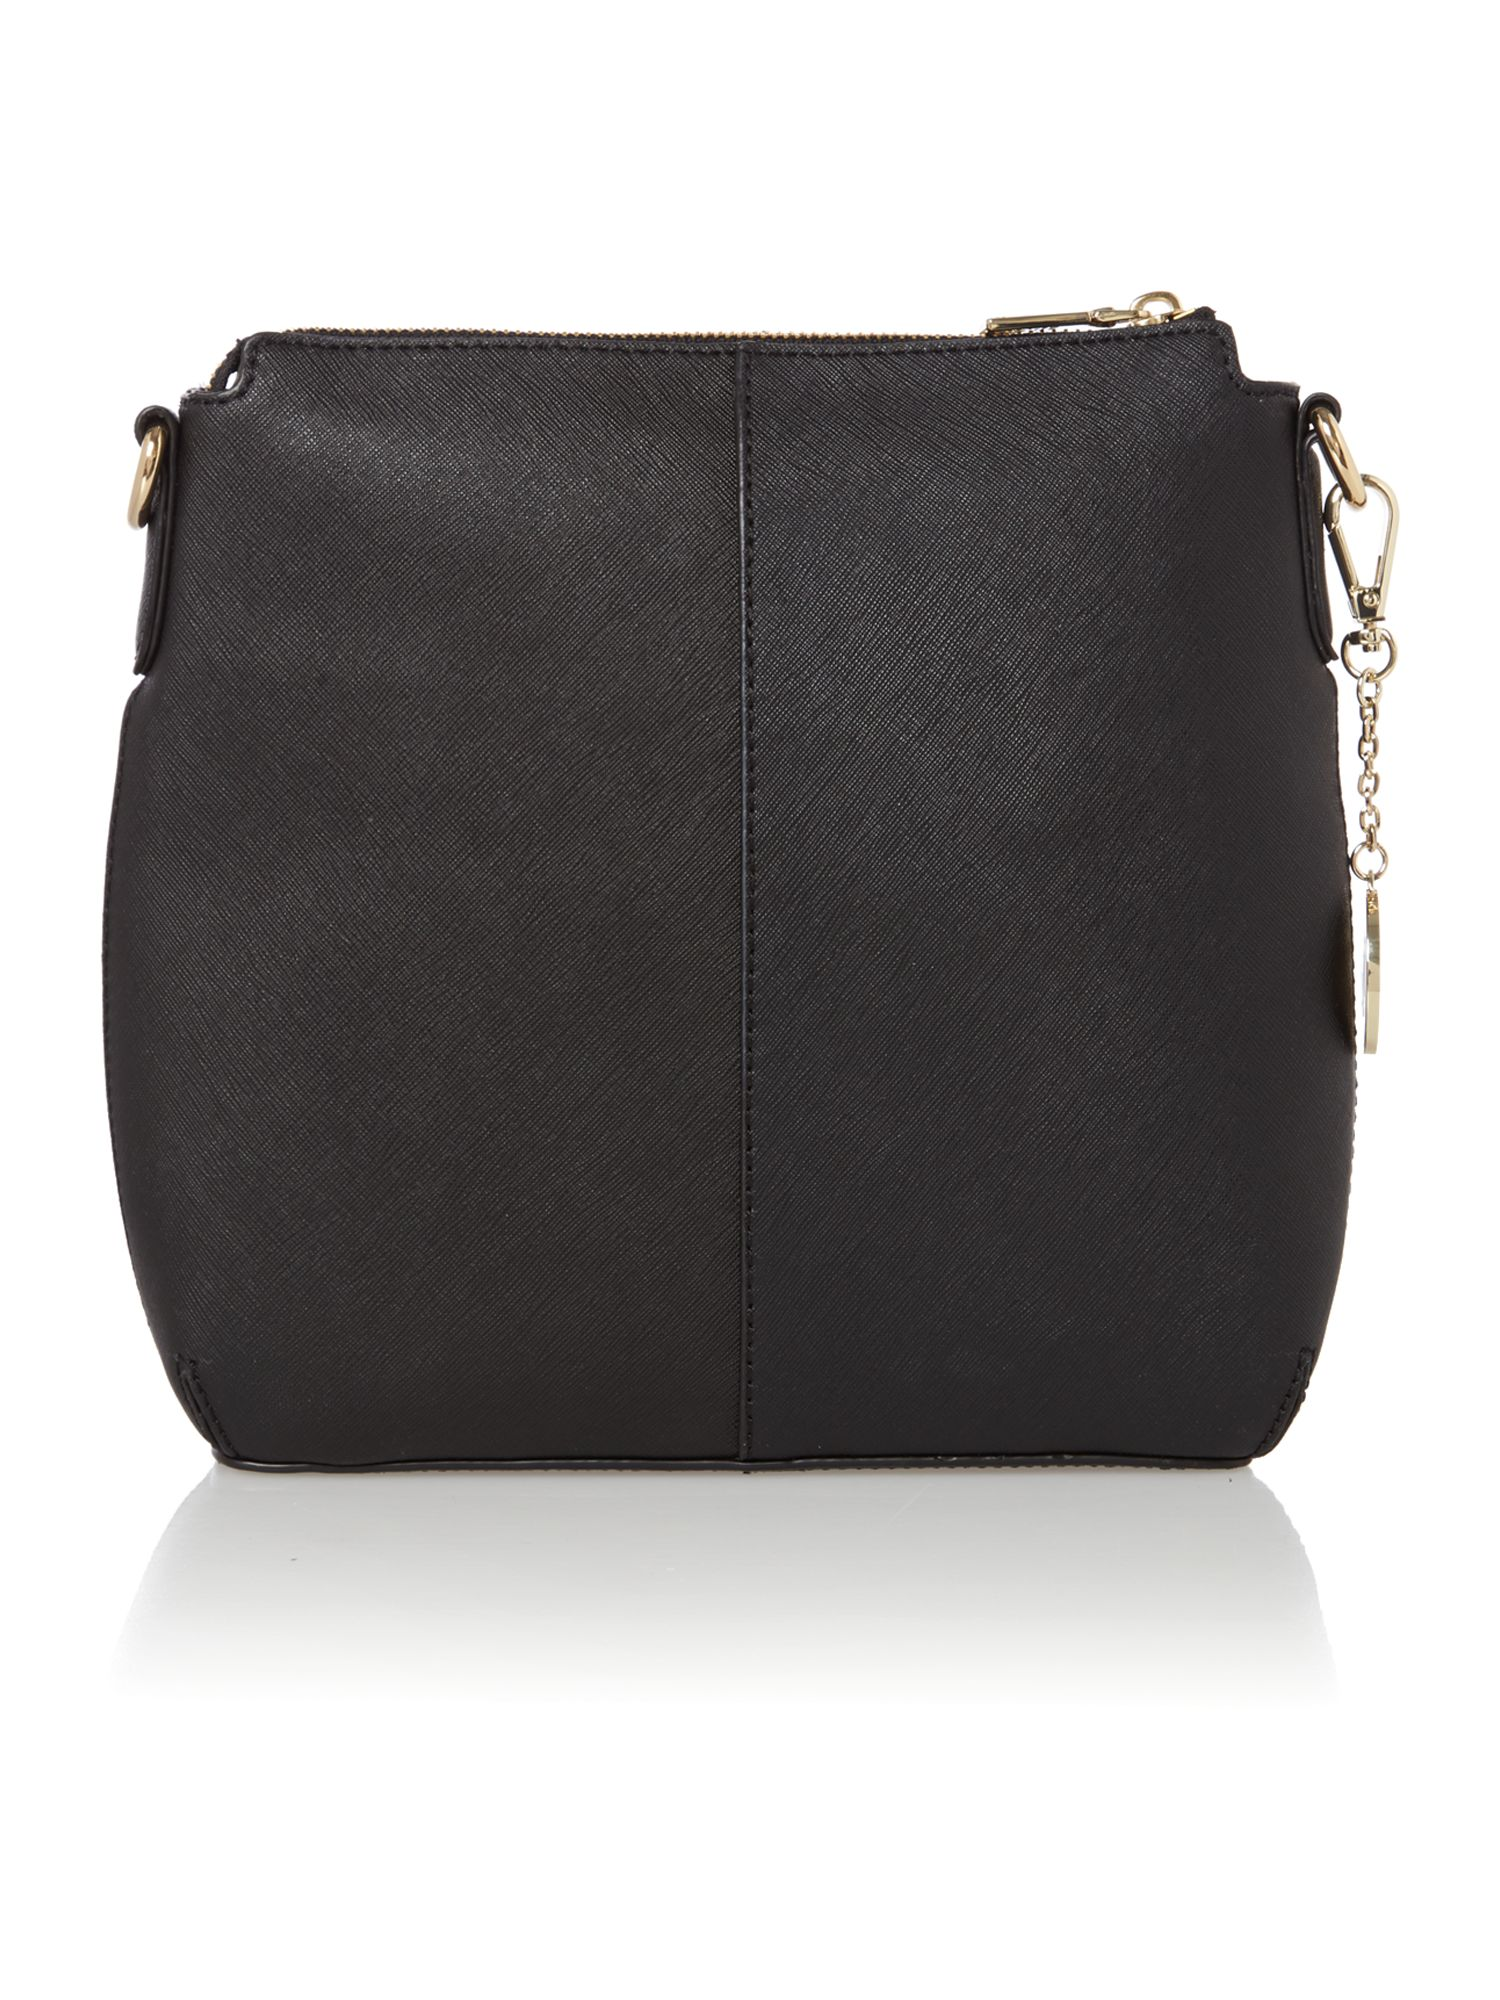 Saffiano black crossbody bag